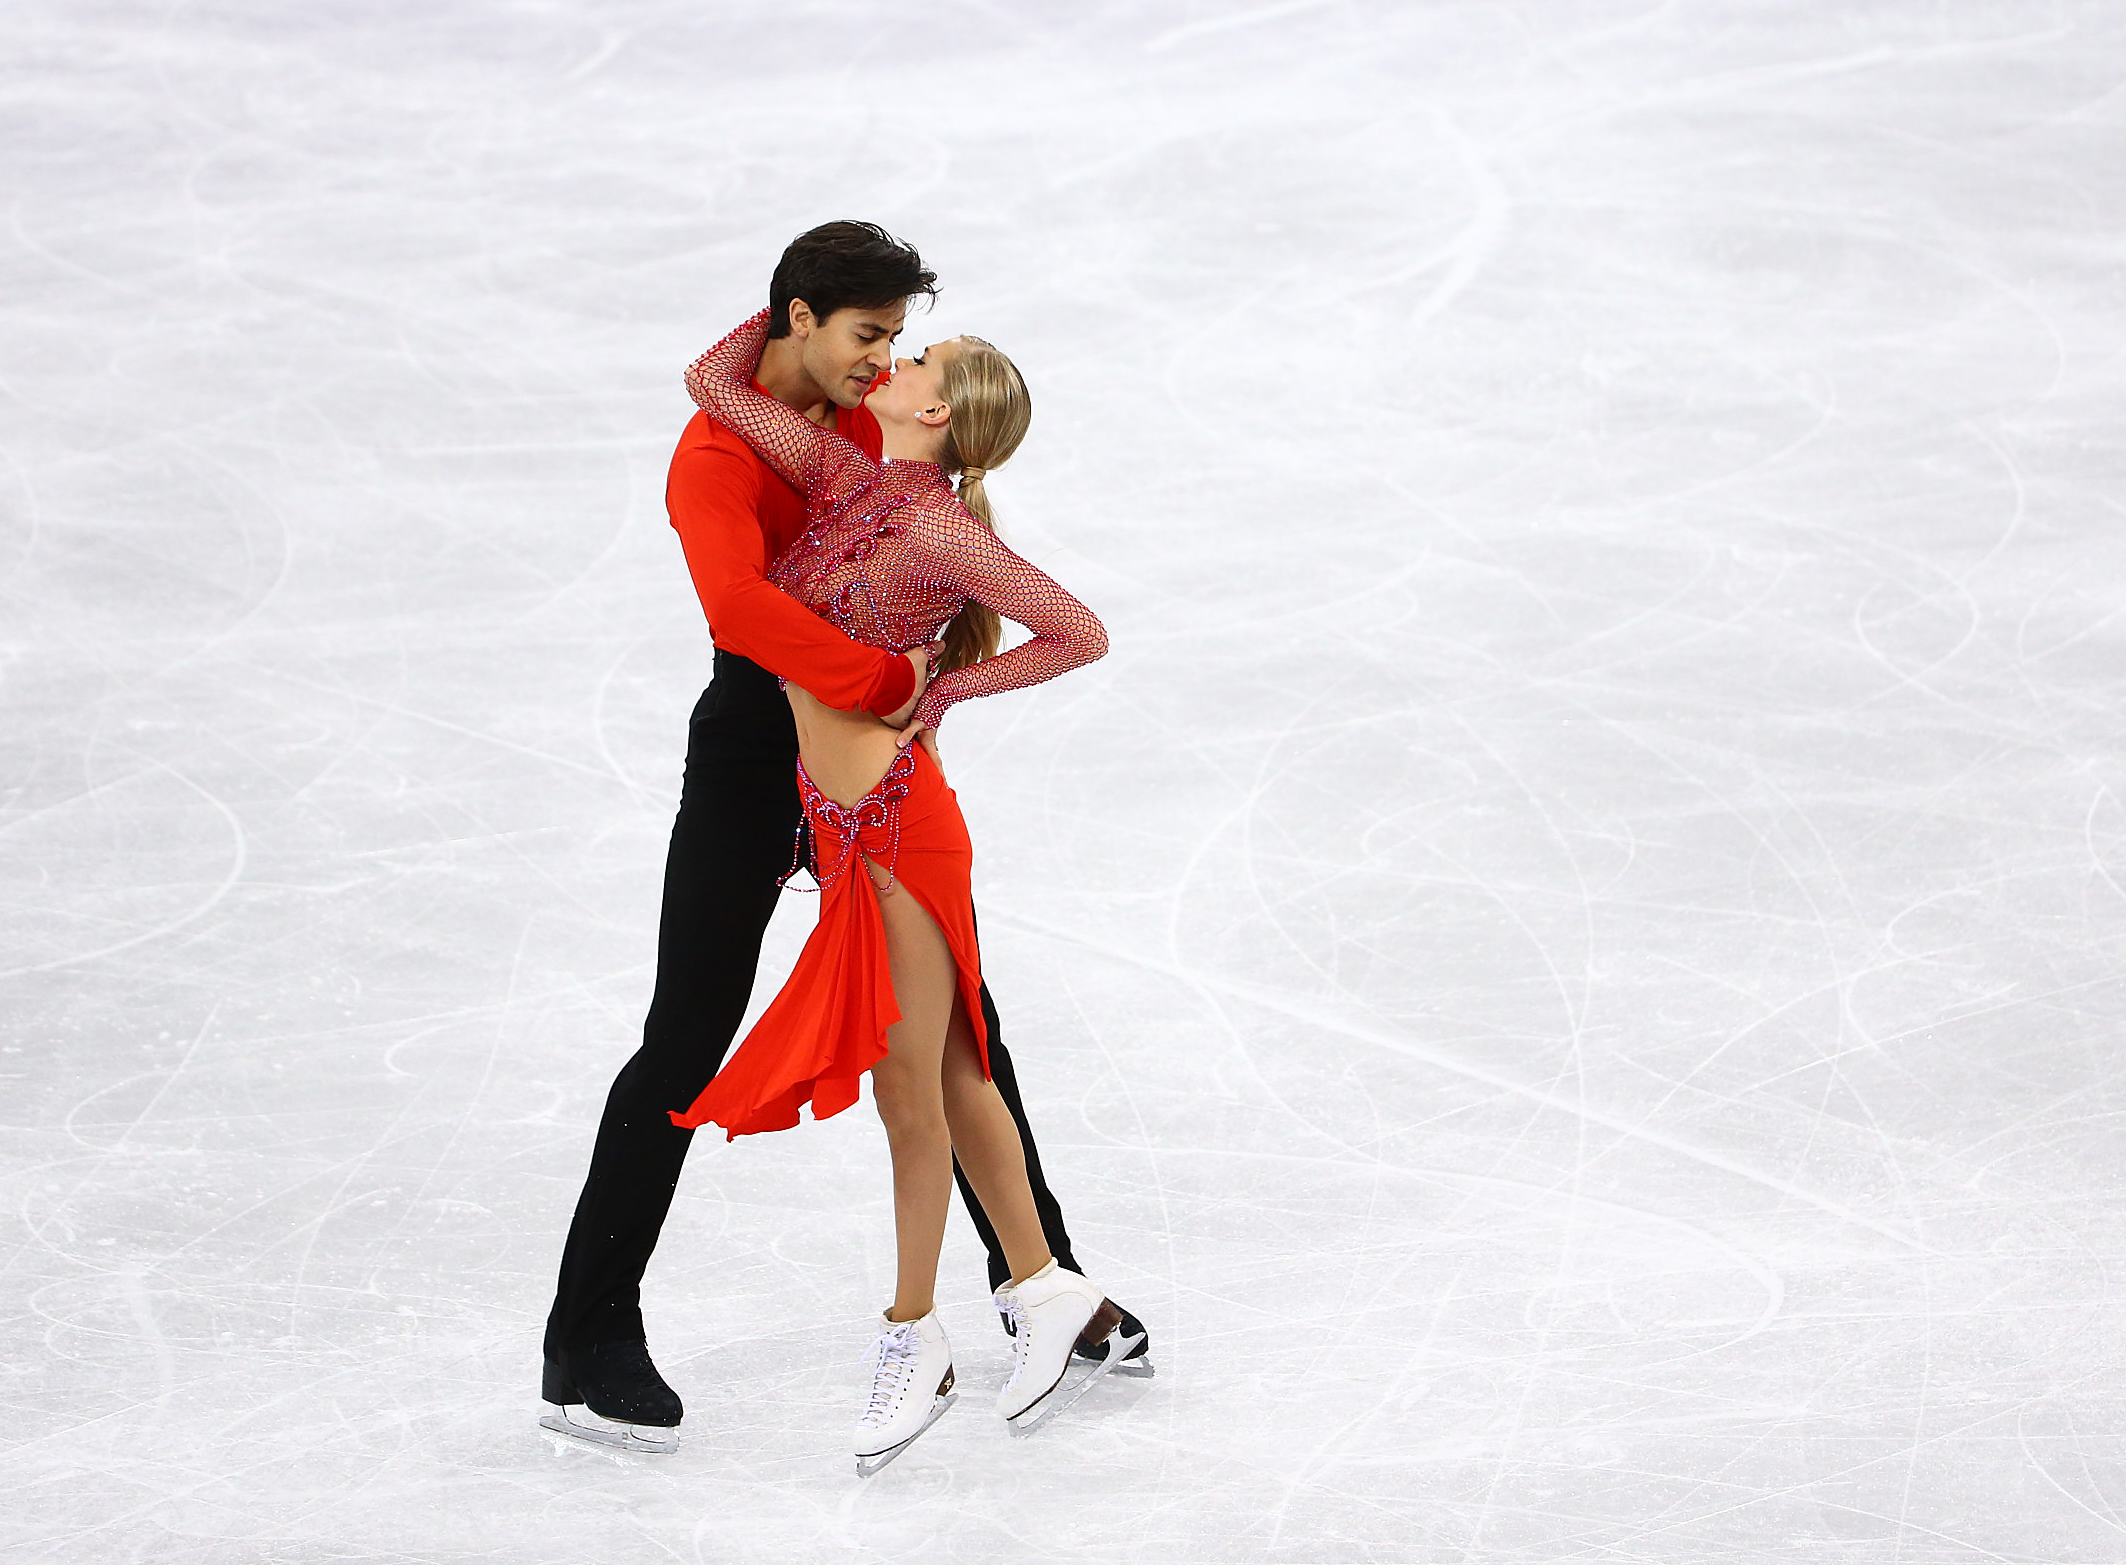 Kaitlyn Weaver and Andrew Poje of Canada compete in the Figure Skating Ice Dance Short Program at the Gangneung Ice Arena during the PyeongChang 2018 Olympic Winter Games in PyeongChang, South Korea on February 19, 2018. (Photo by Vaughn Ridley/COC)